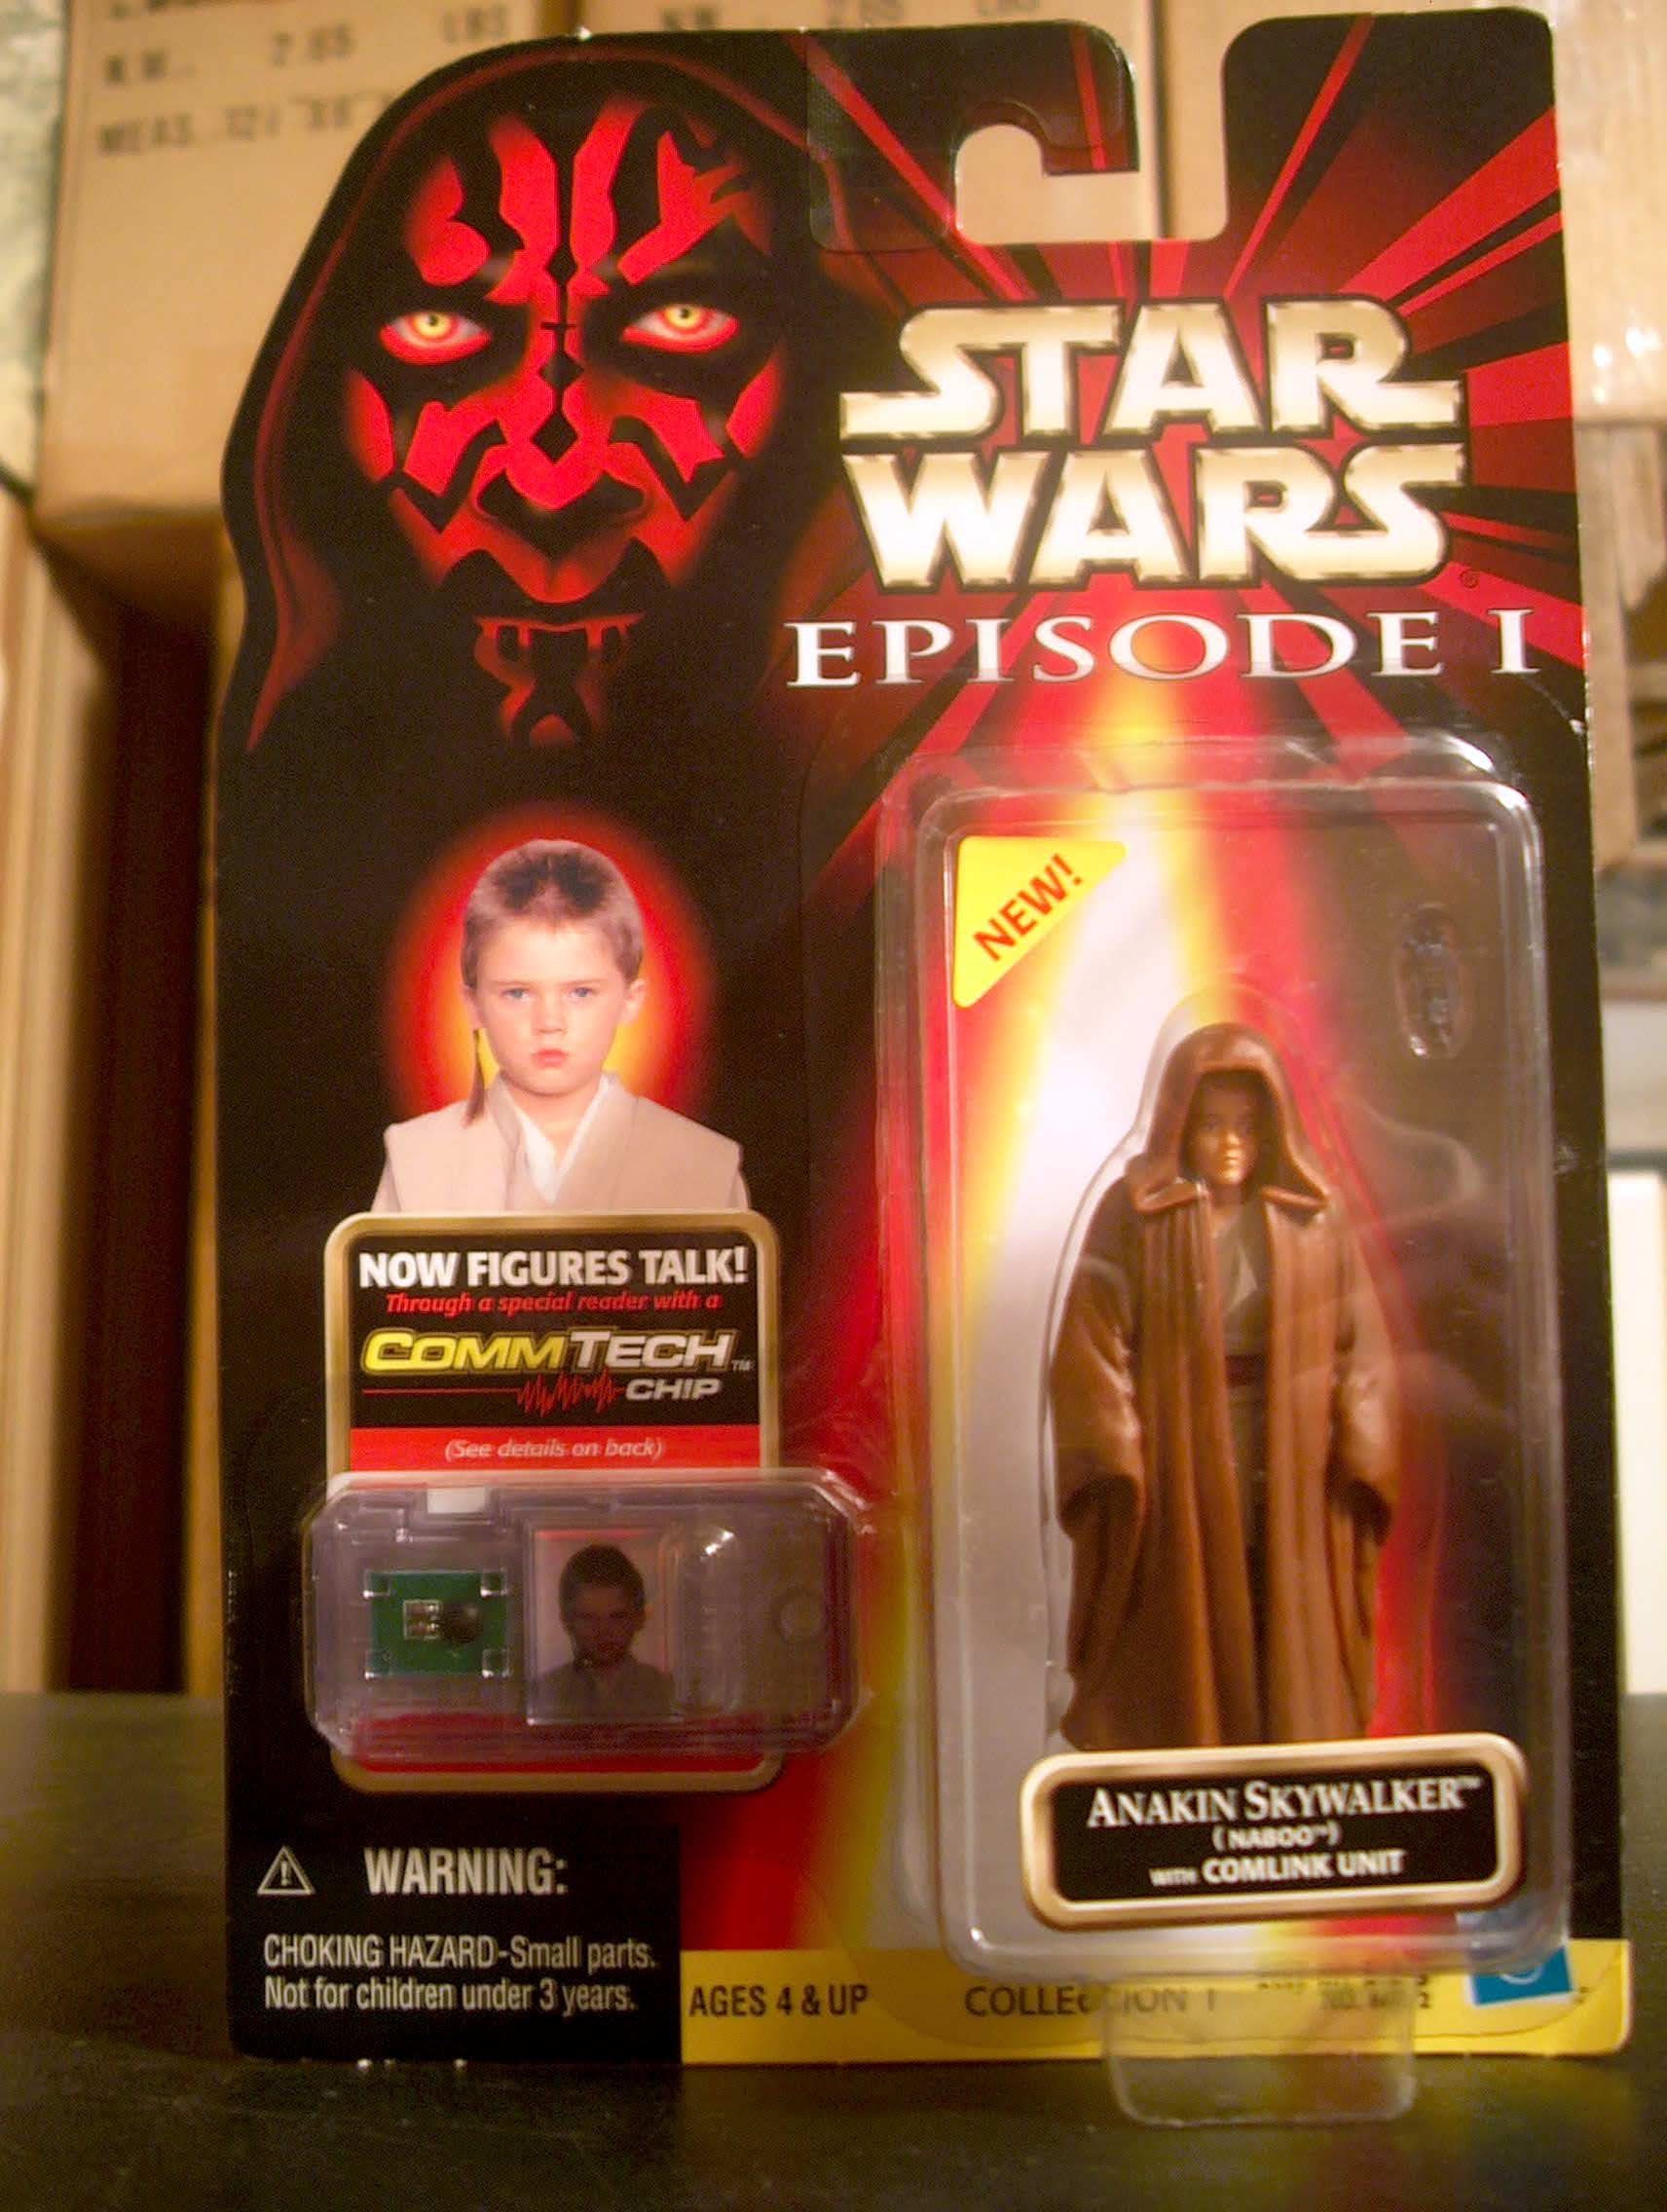 Anakin Skywalker (Naboo) with Comlink Unit (.0100) (New sticker)